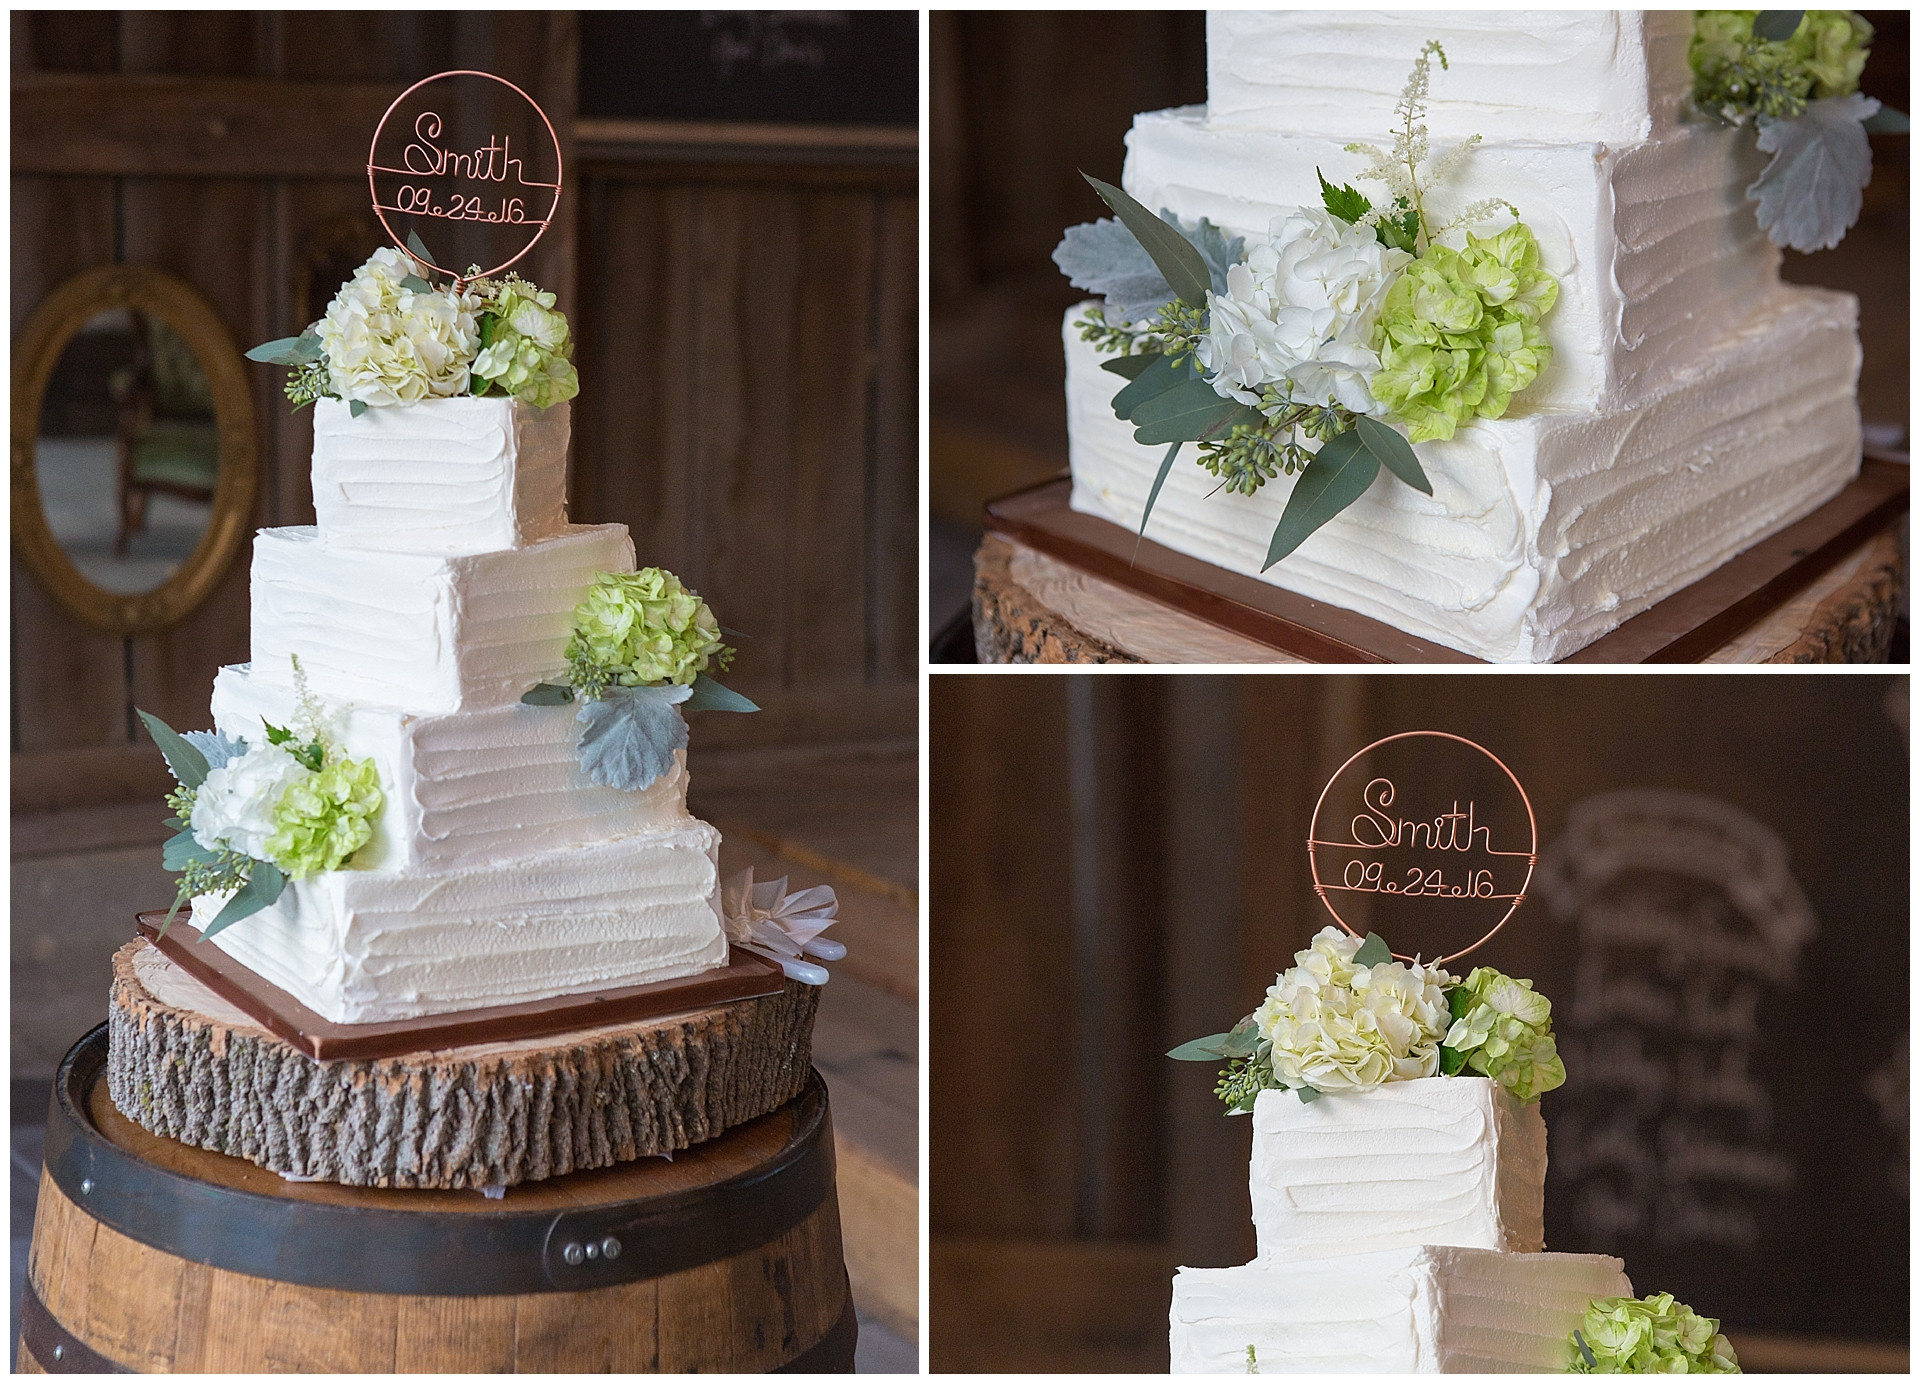 Wedding Cakes Lexington Ky  Tinker s Cake Shop Specializing in Wedding Cakes and Groom